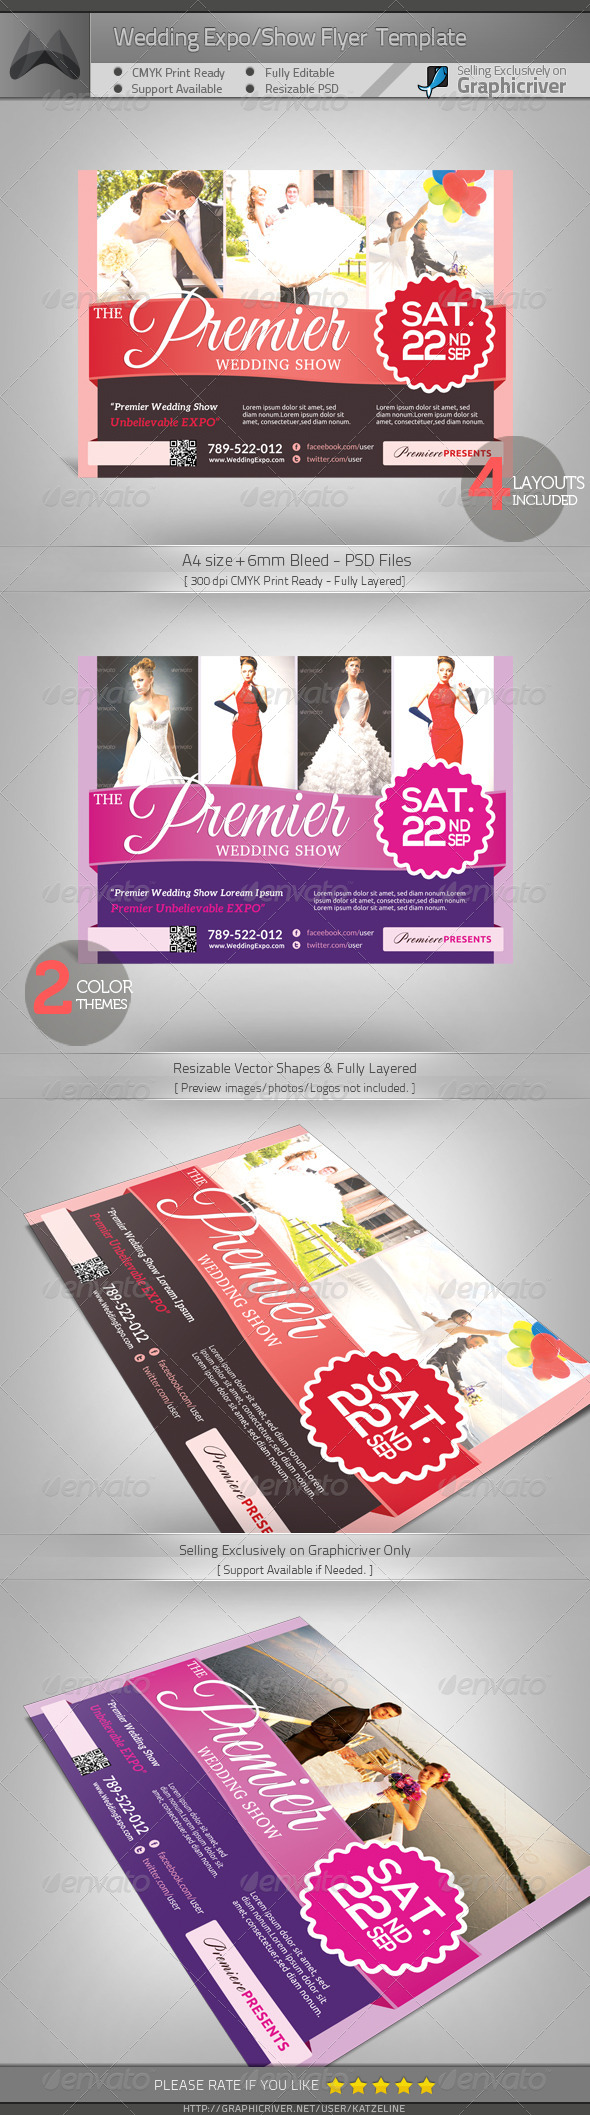 GraphicRiver Wedding Expo Show Flyer Template 5139932